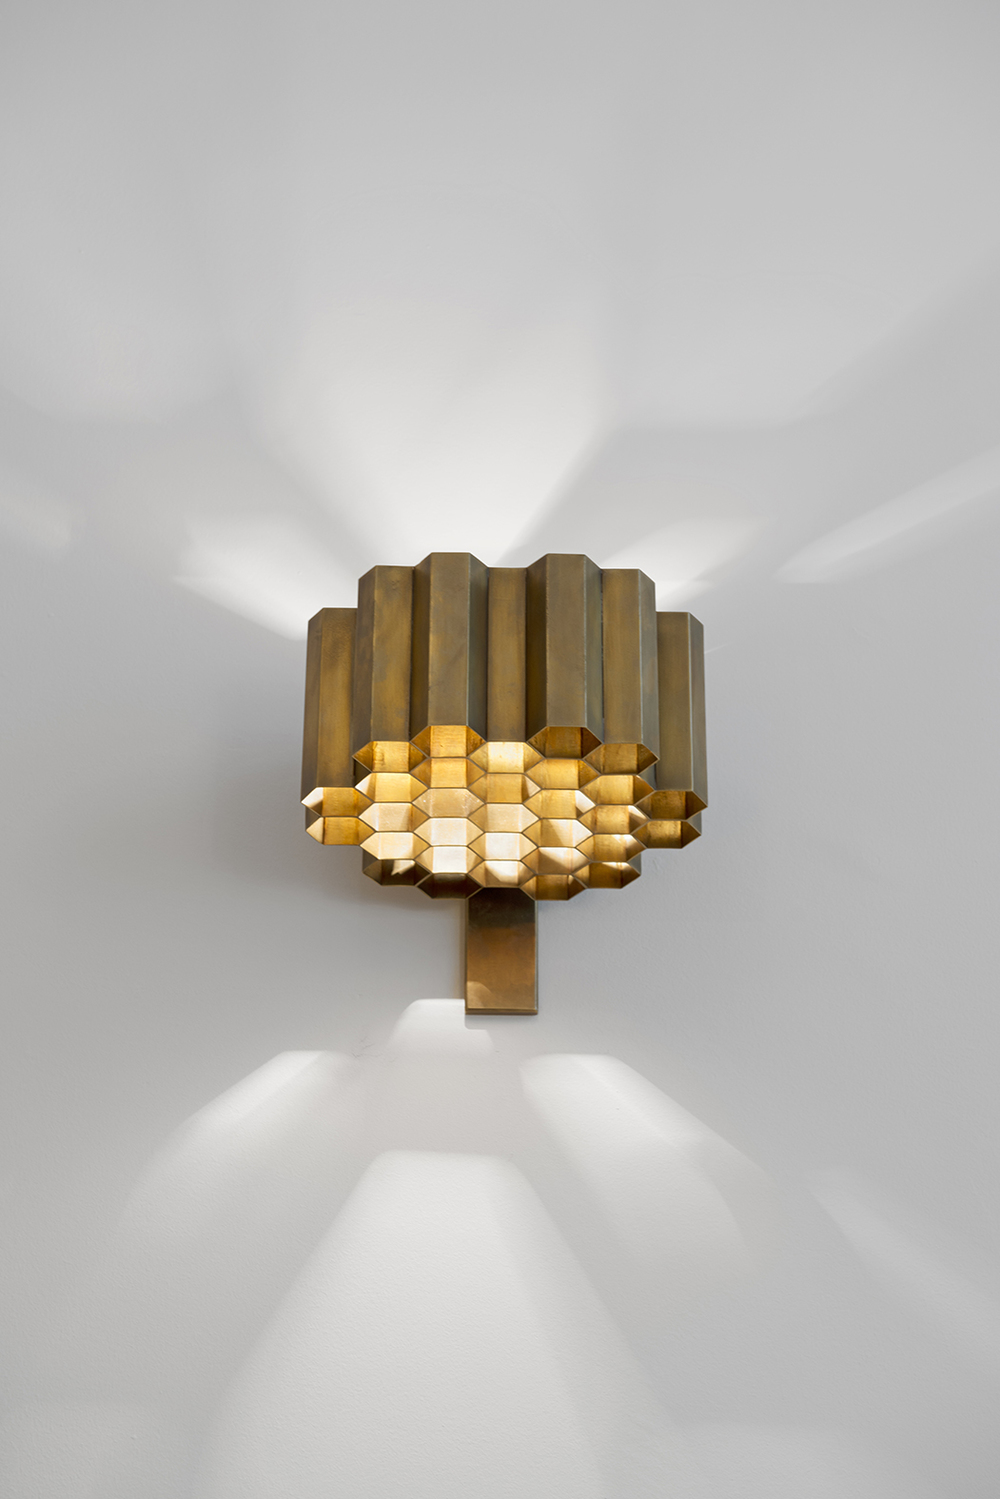 We sourced and restored a rare pair of Jules Wabbes honeycomb wall lights for a client project in Belgium